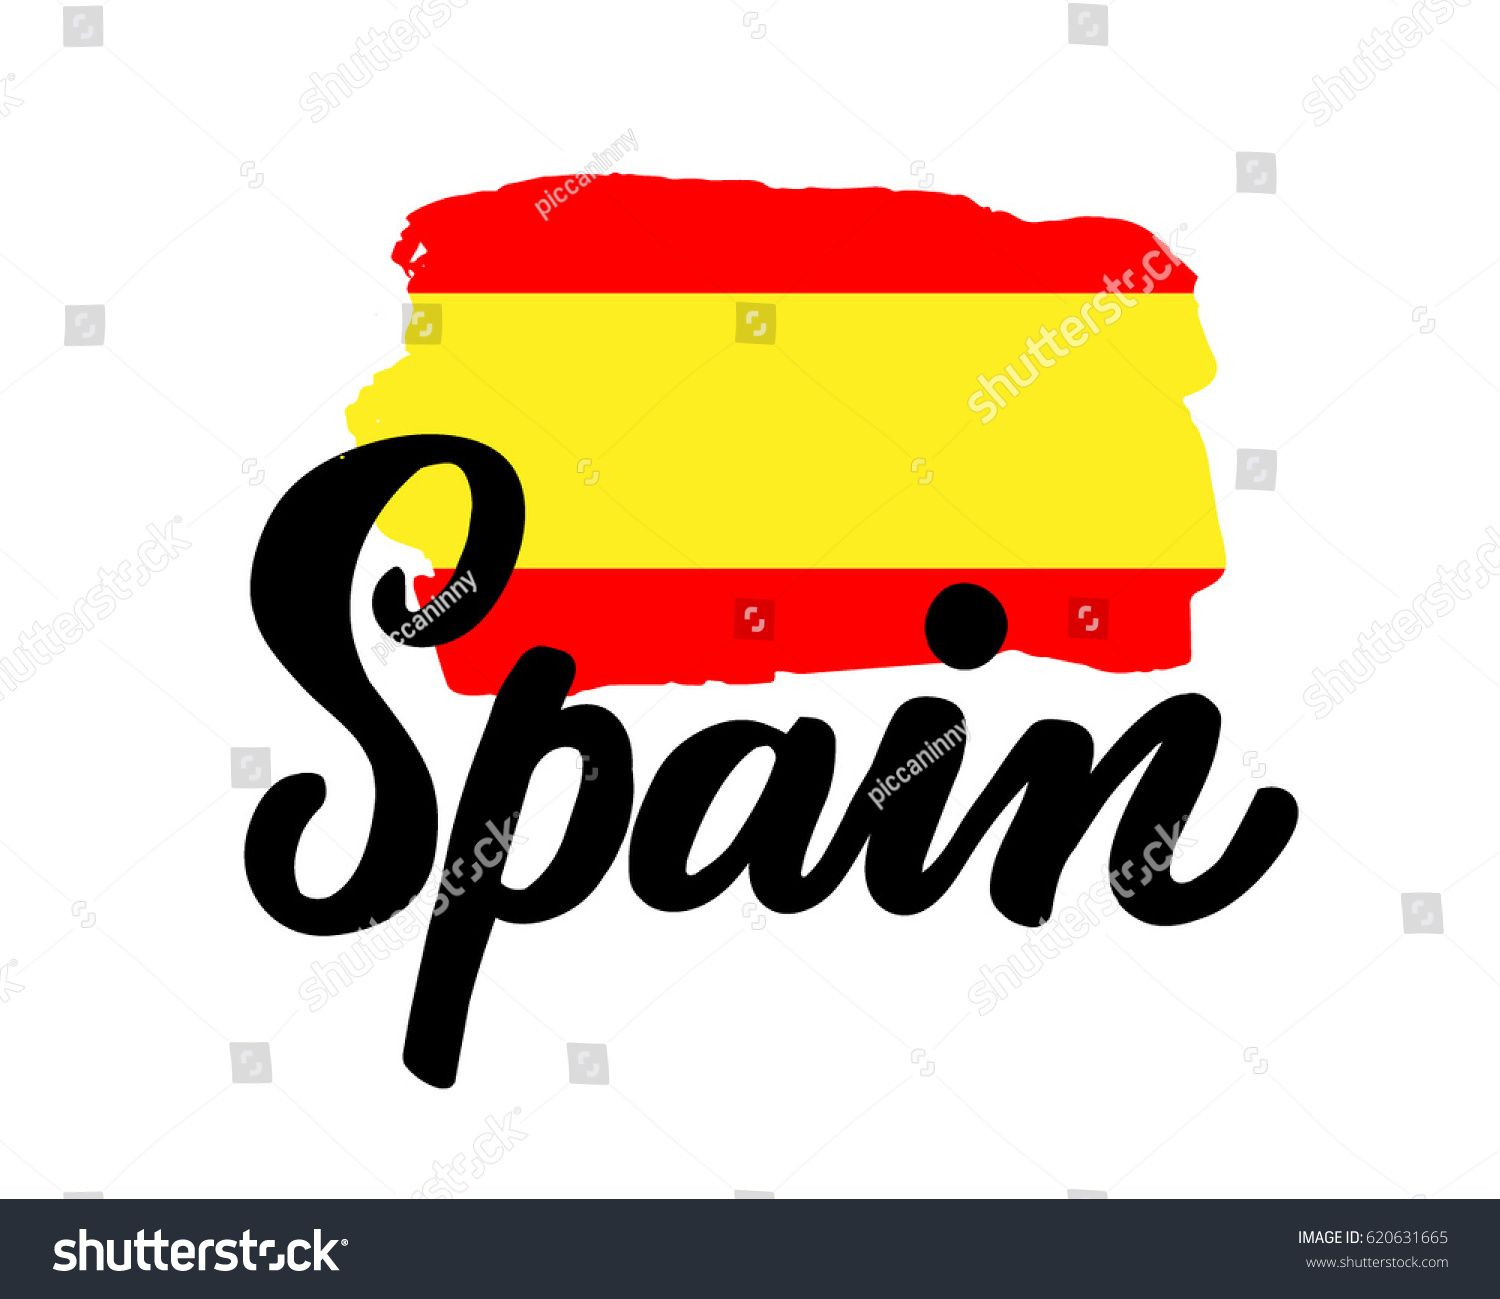 spain hand drawn ink brush lettering stock vector hd royalty free rh shutterstock com spain flag emblem meaning spain flag emblem meaning